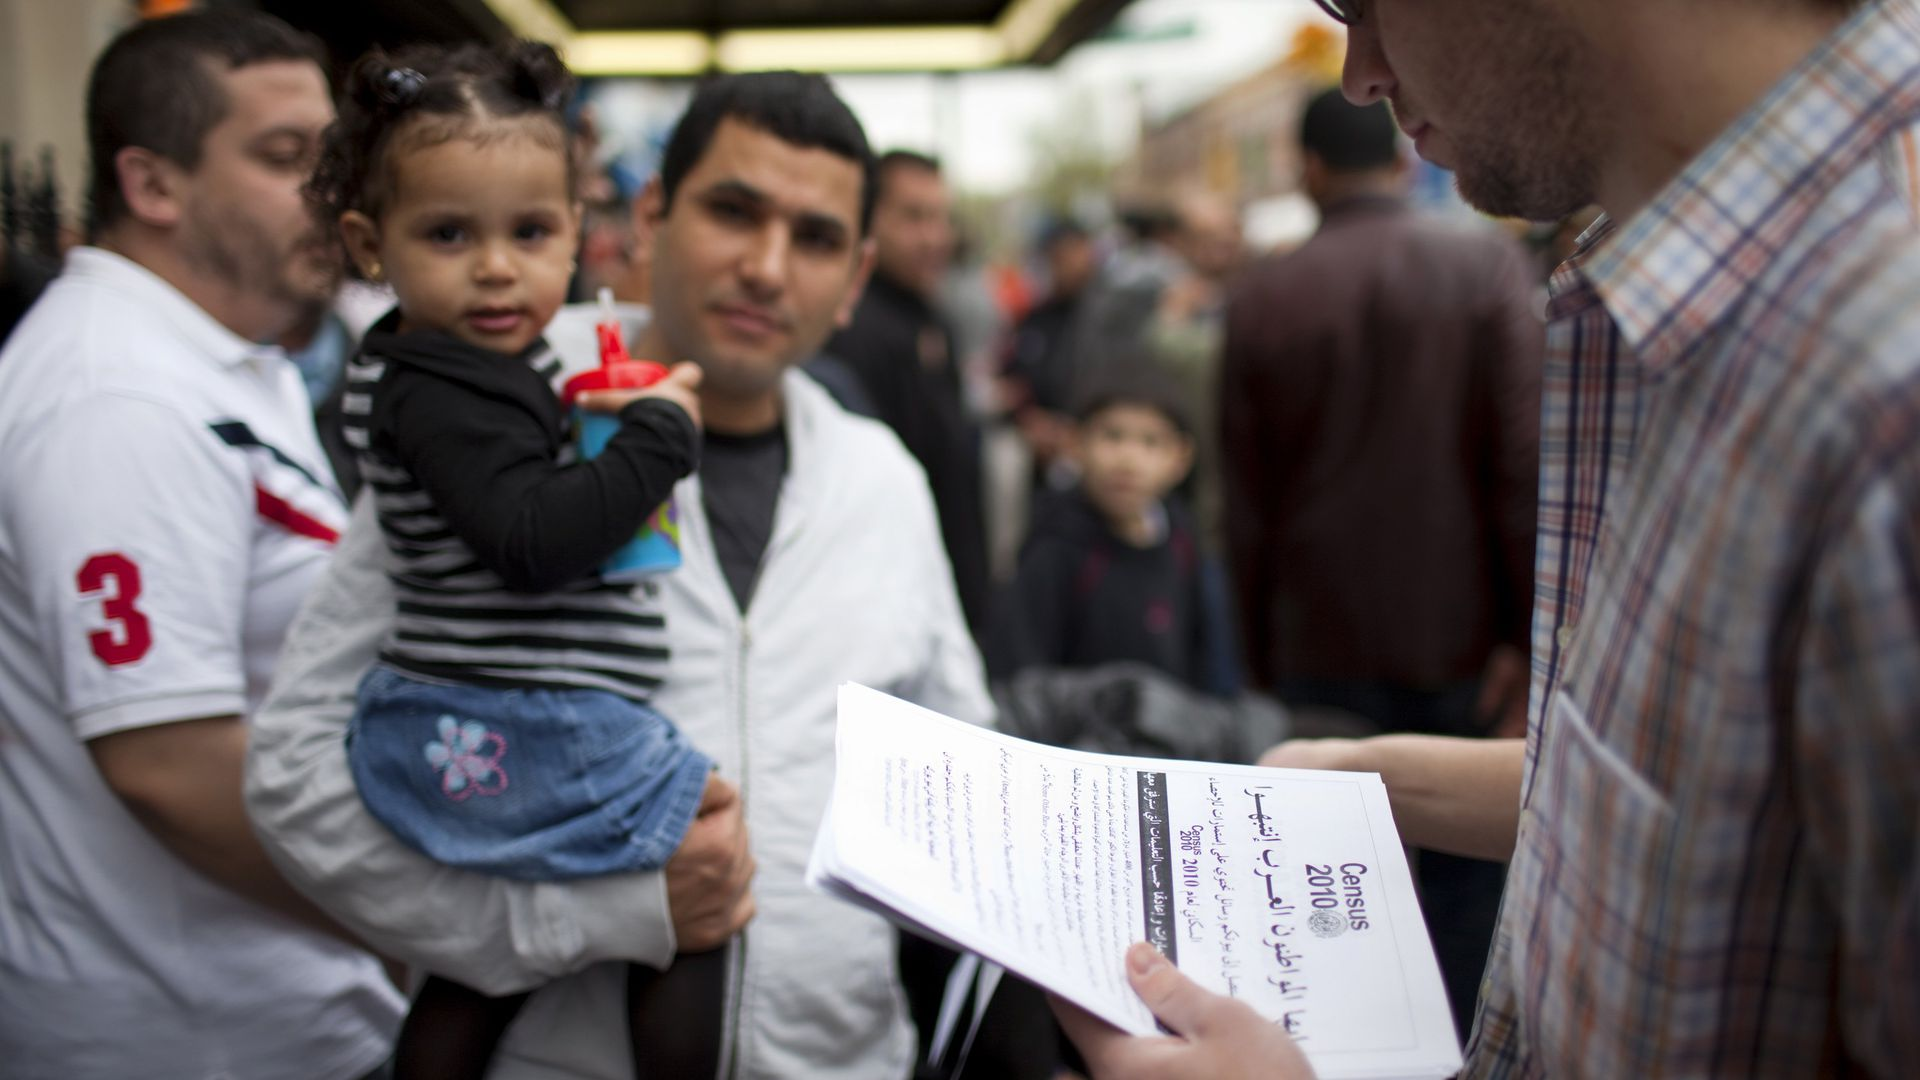 In this image, a man holds a toddler while another man hands out census papers.